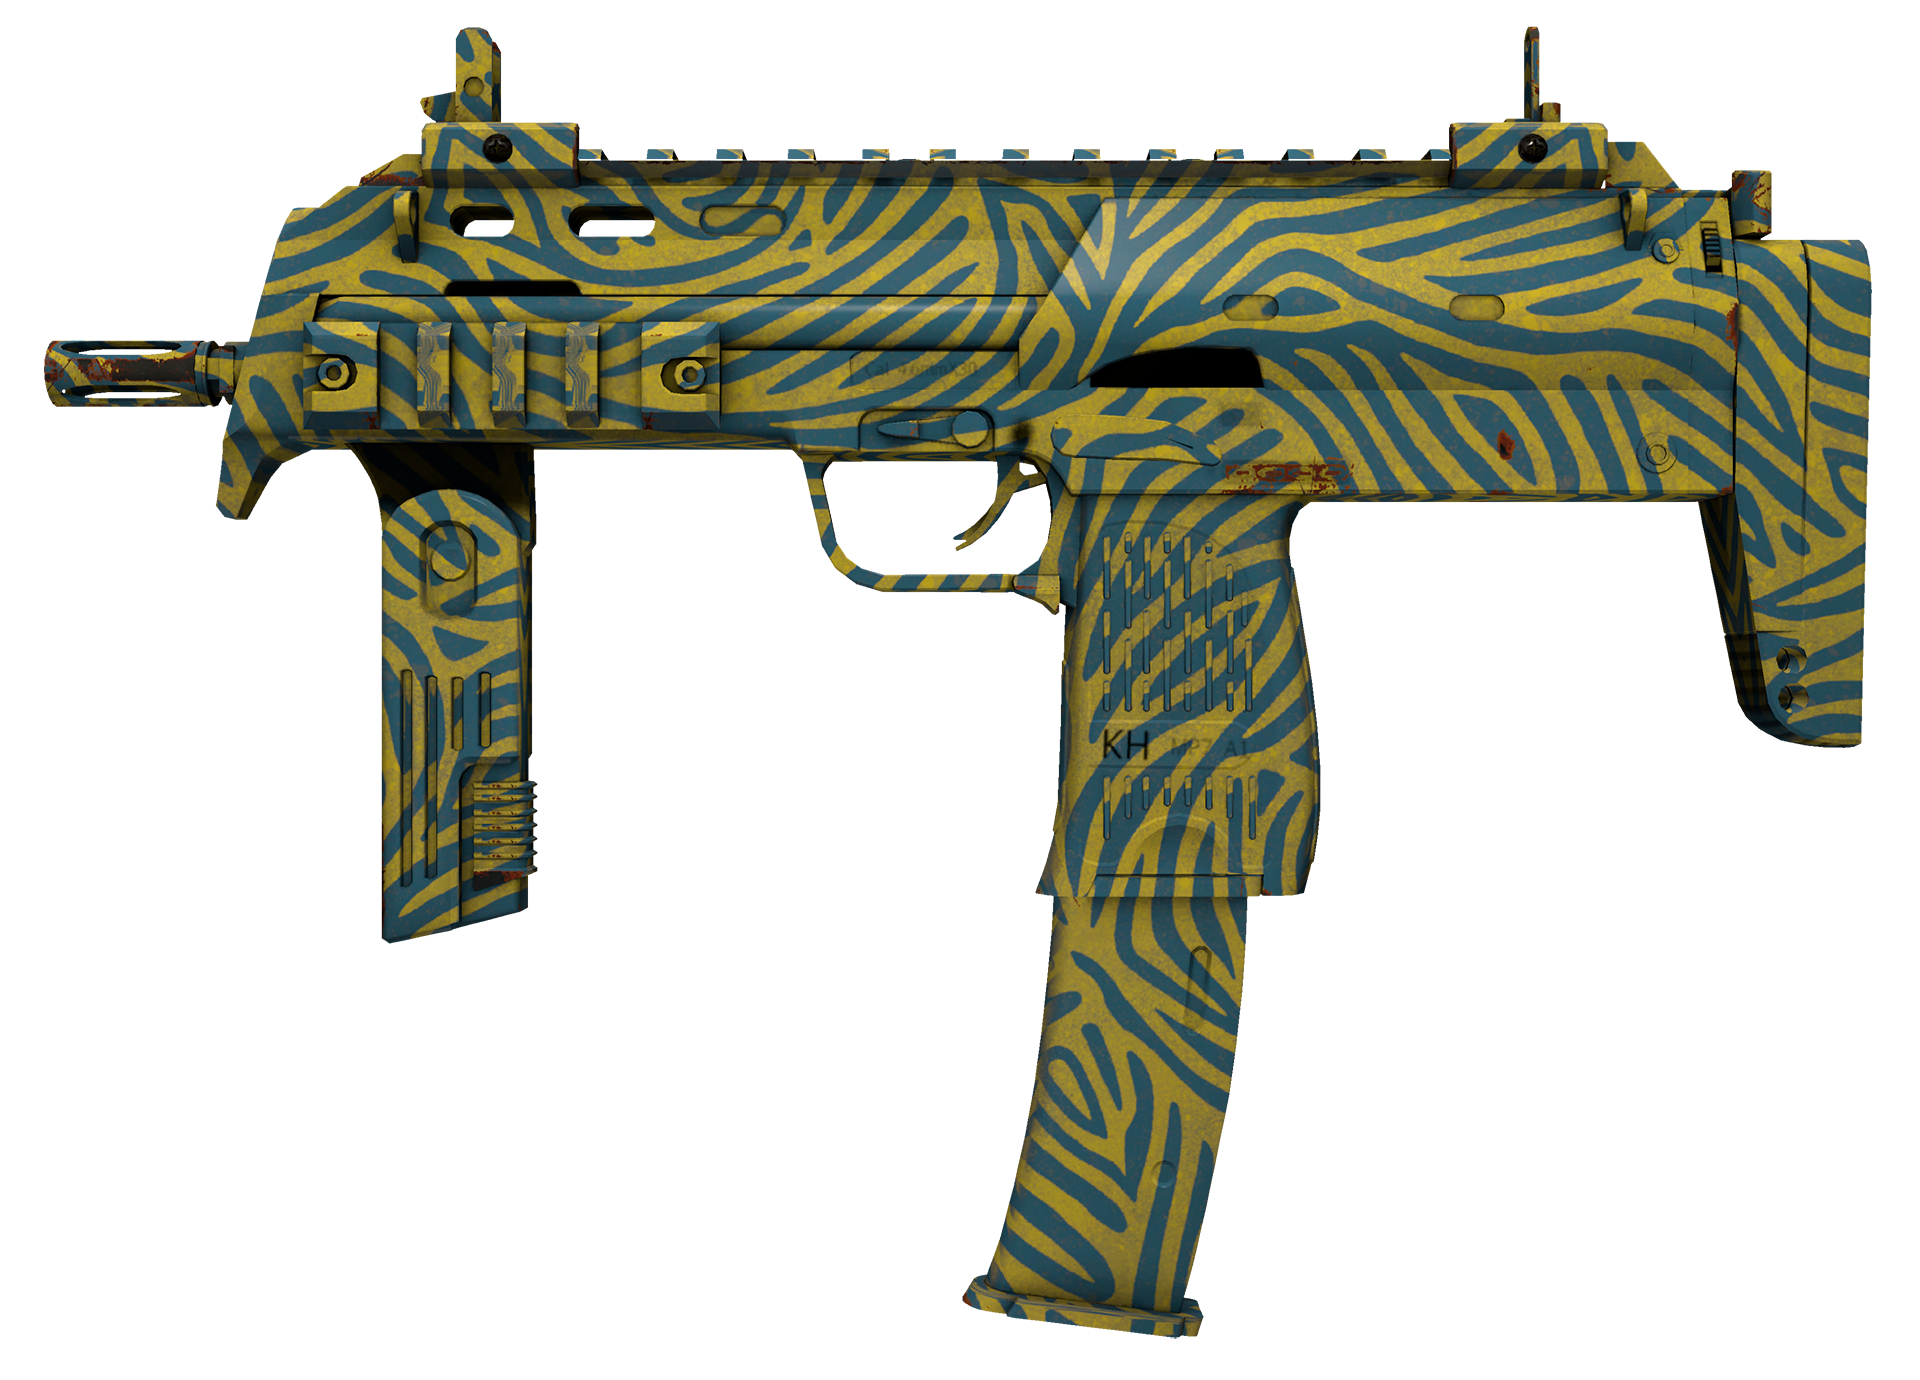 MP7 Akoben Large Rendering